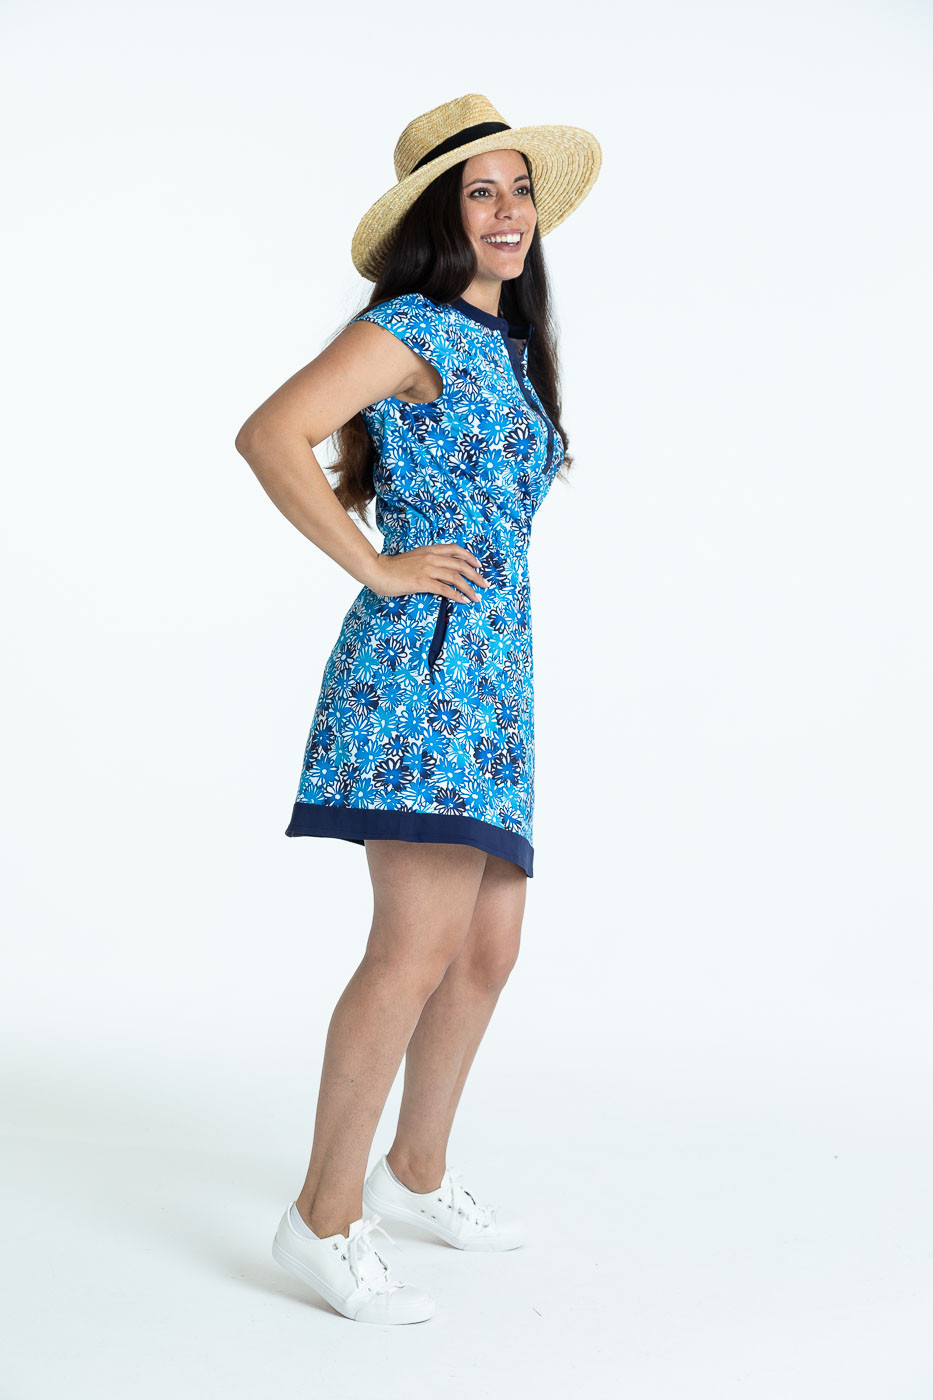 Smiling woman in a crazy daisy Ready to Relax golf dress